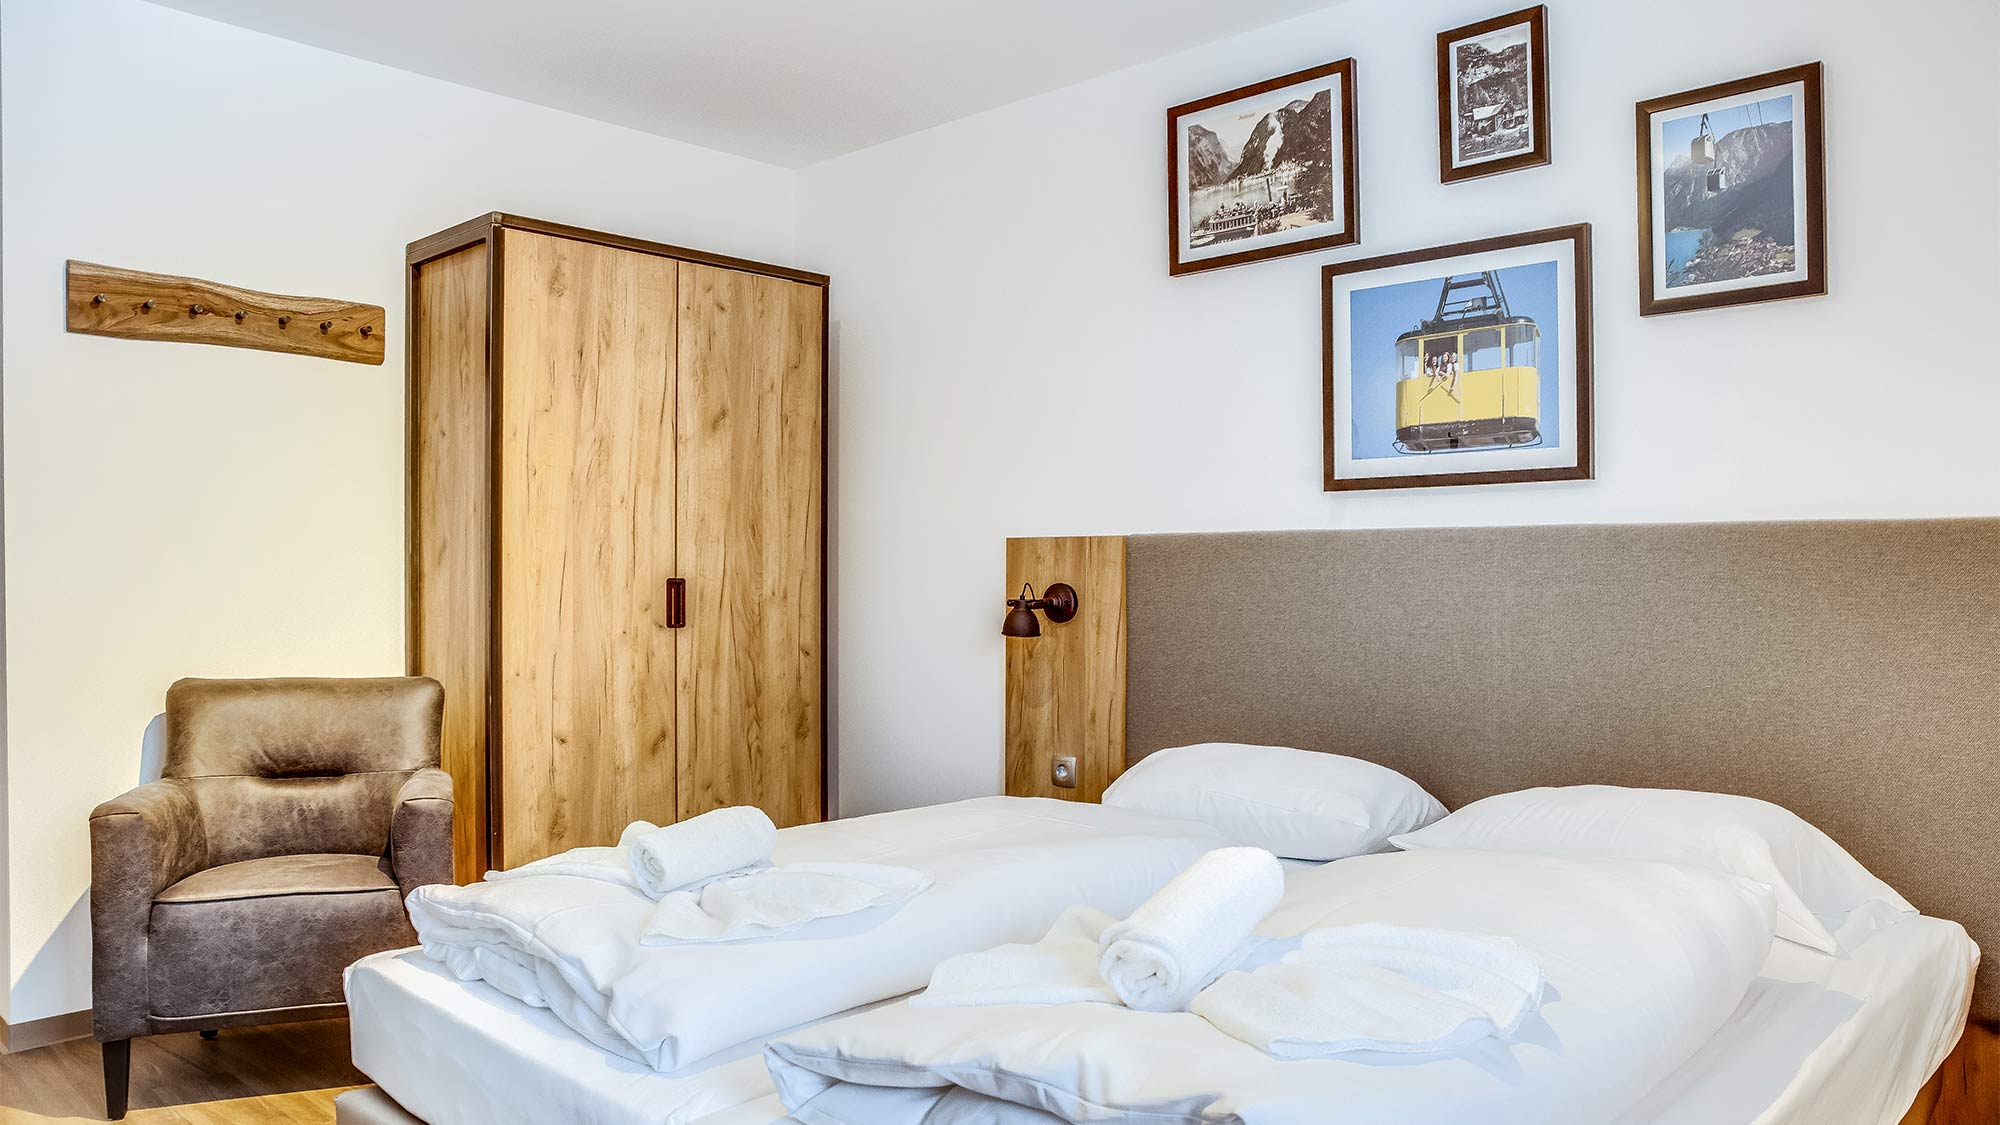 Room Altaussee for 2 people